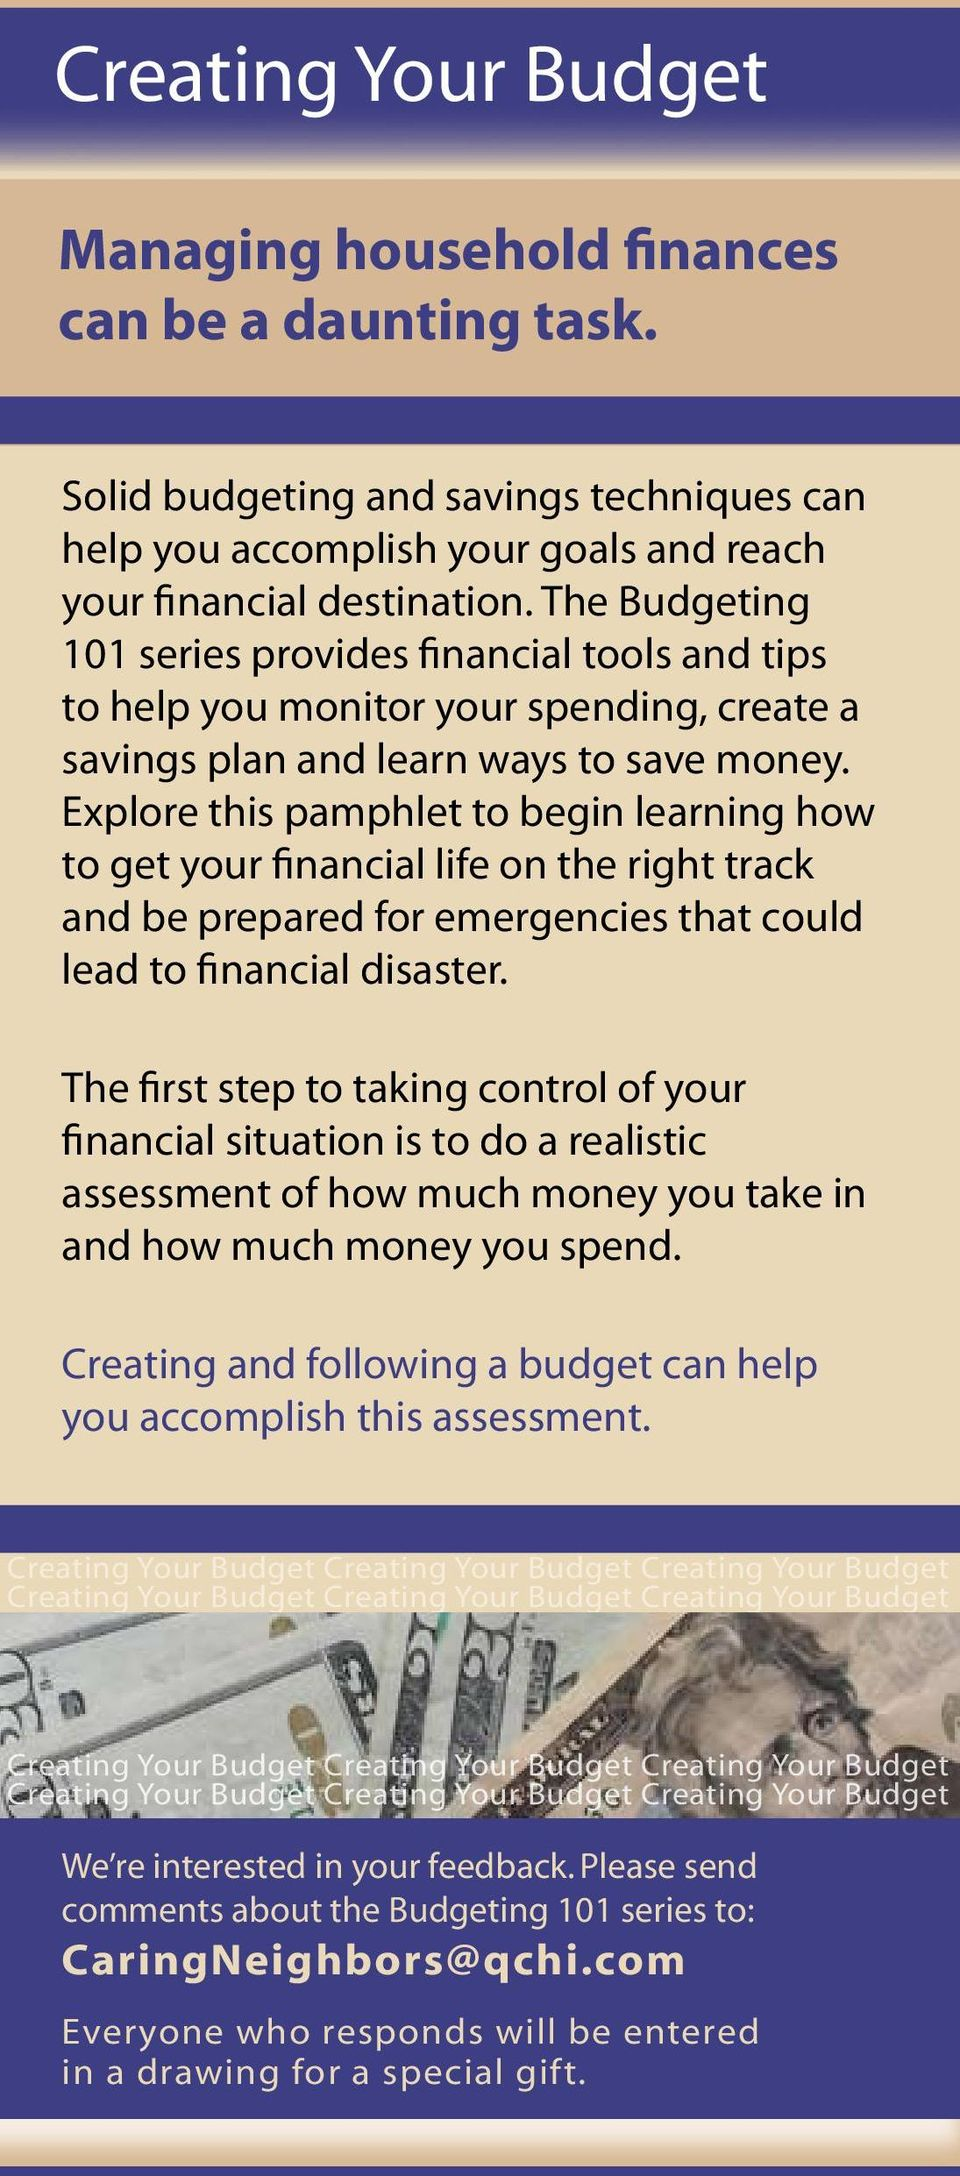 Explore this pamphlet to begin learning how to get your financial life on the right track and be prepared for emergencies that could lead to financial disaster.